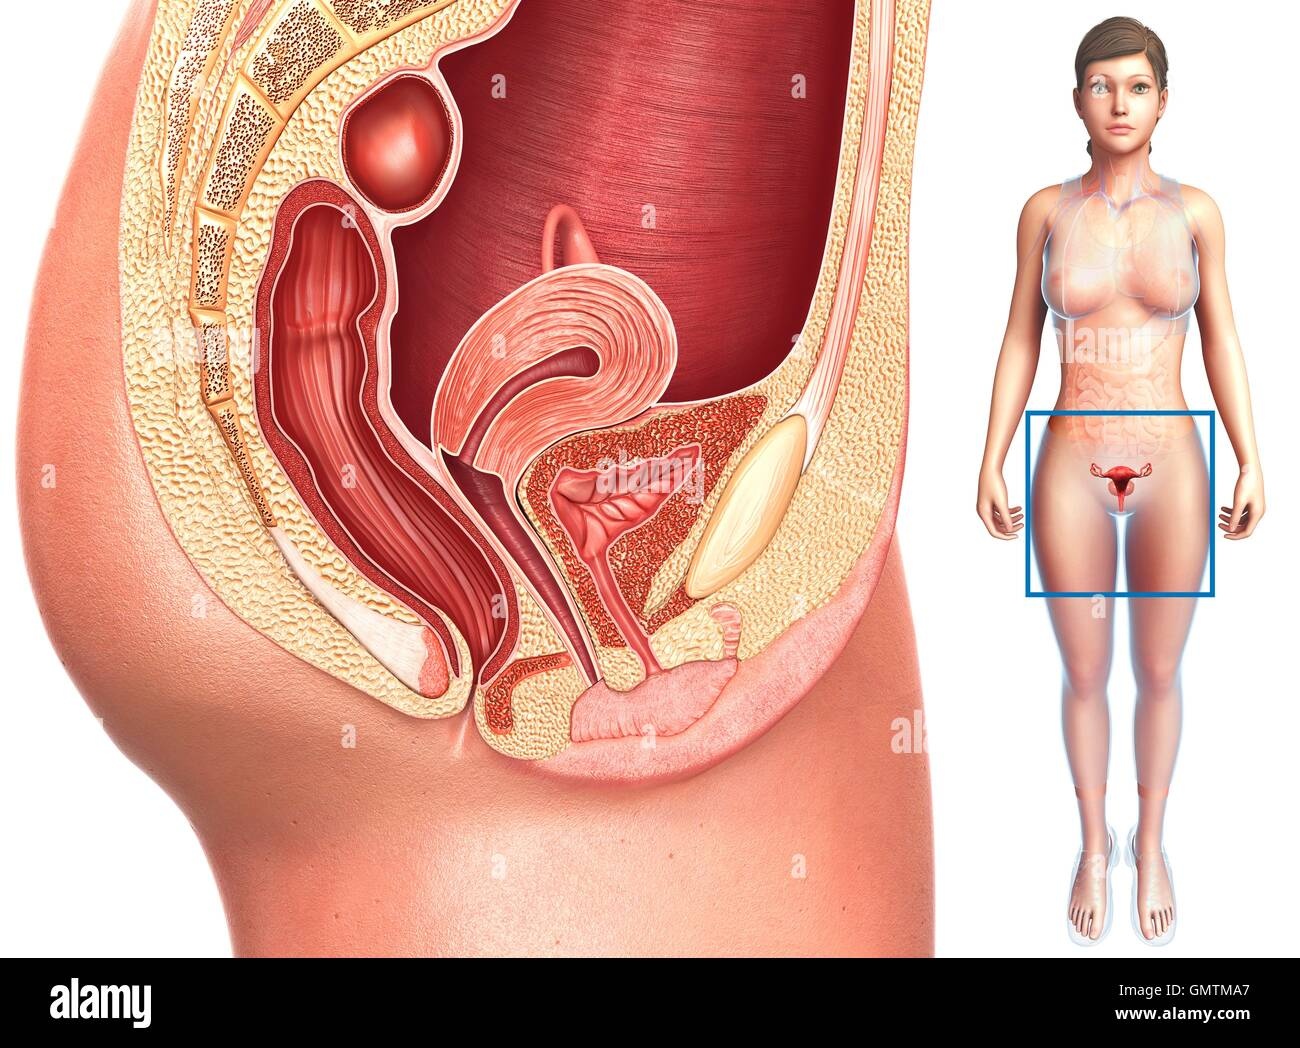 Illustration Of Female Reproductive System Stock Photo Alamy